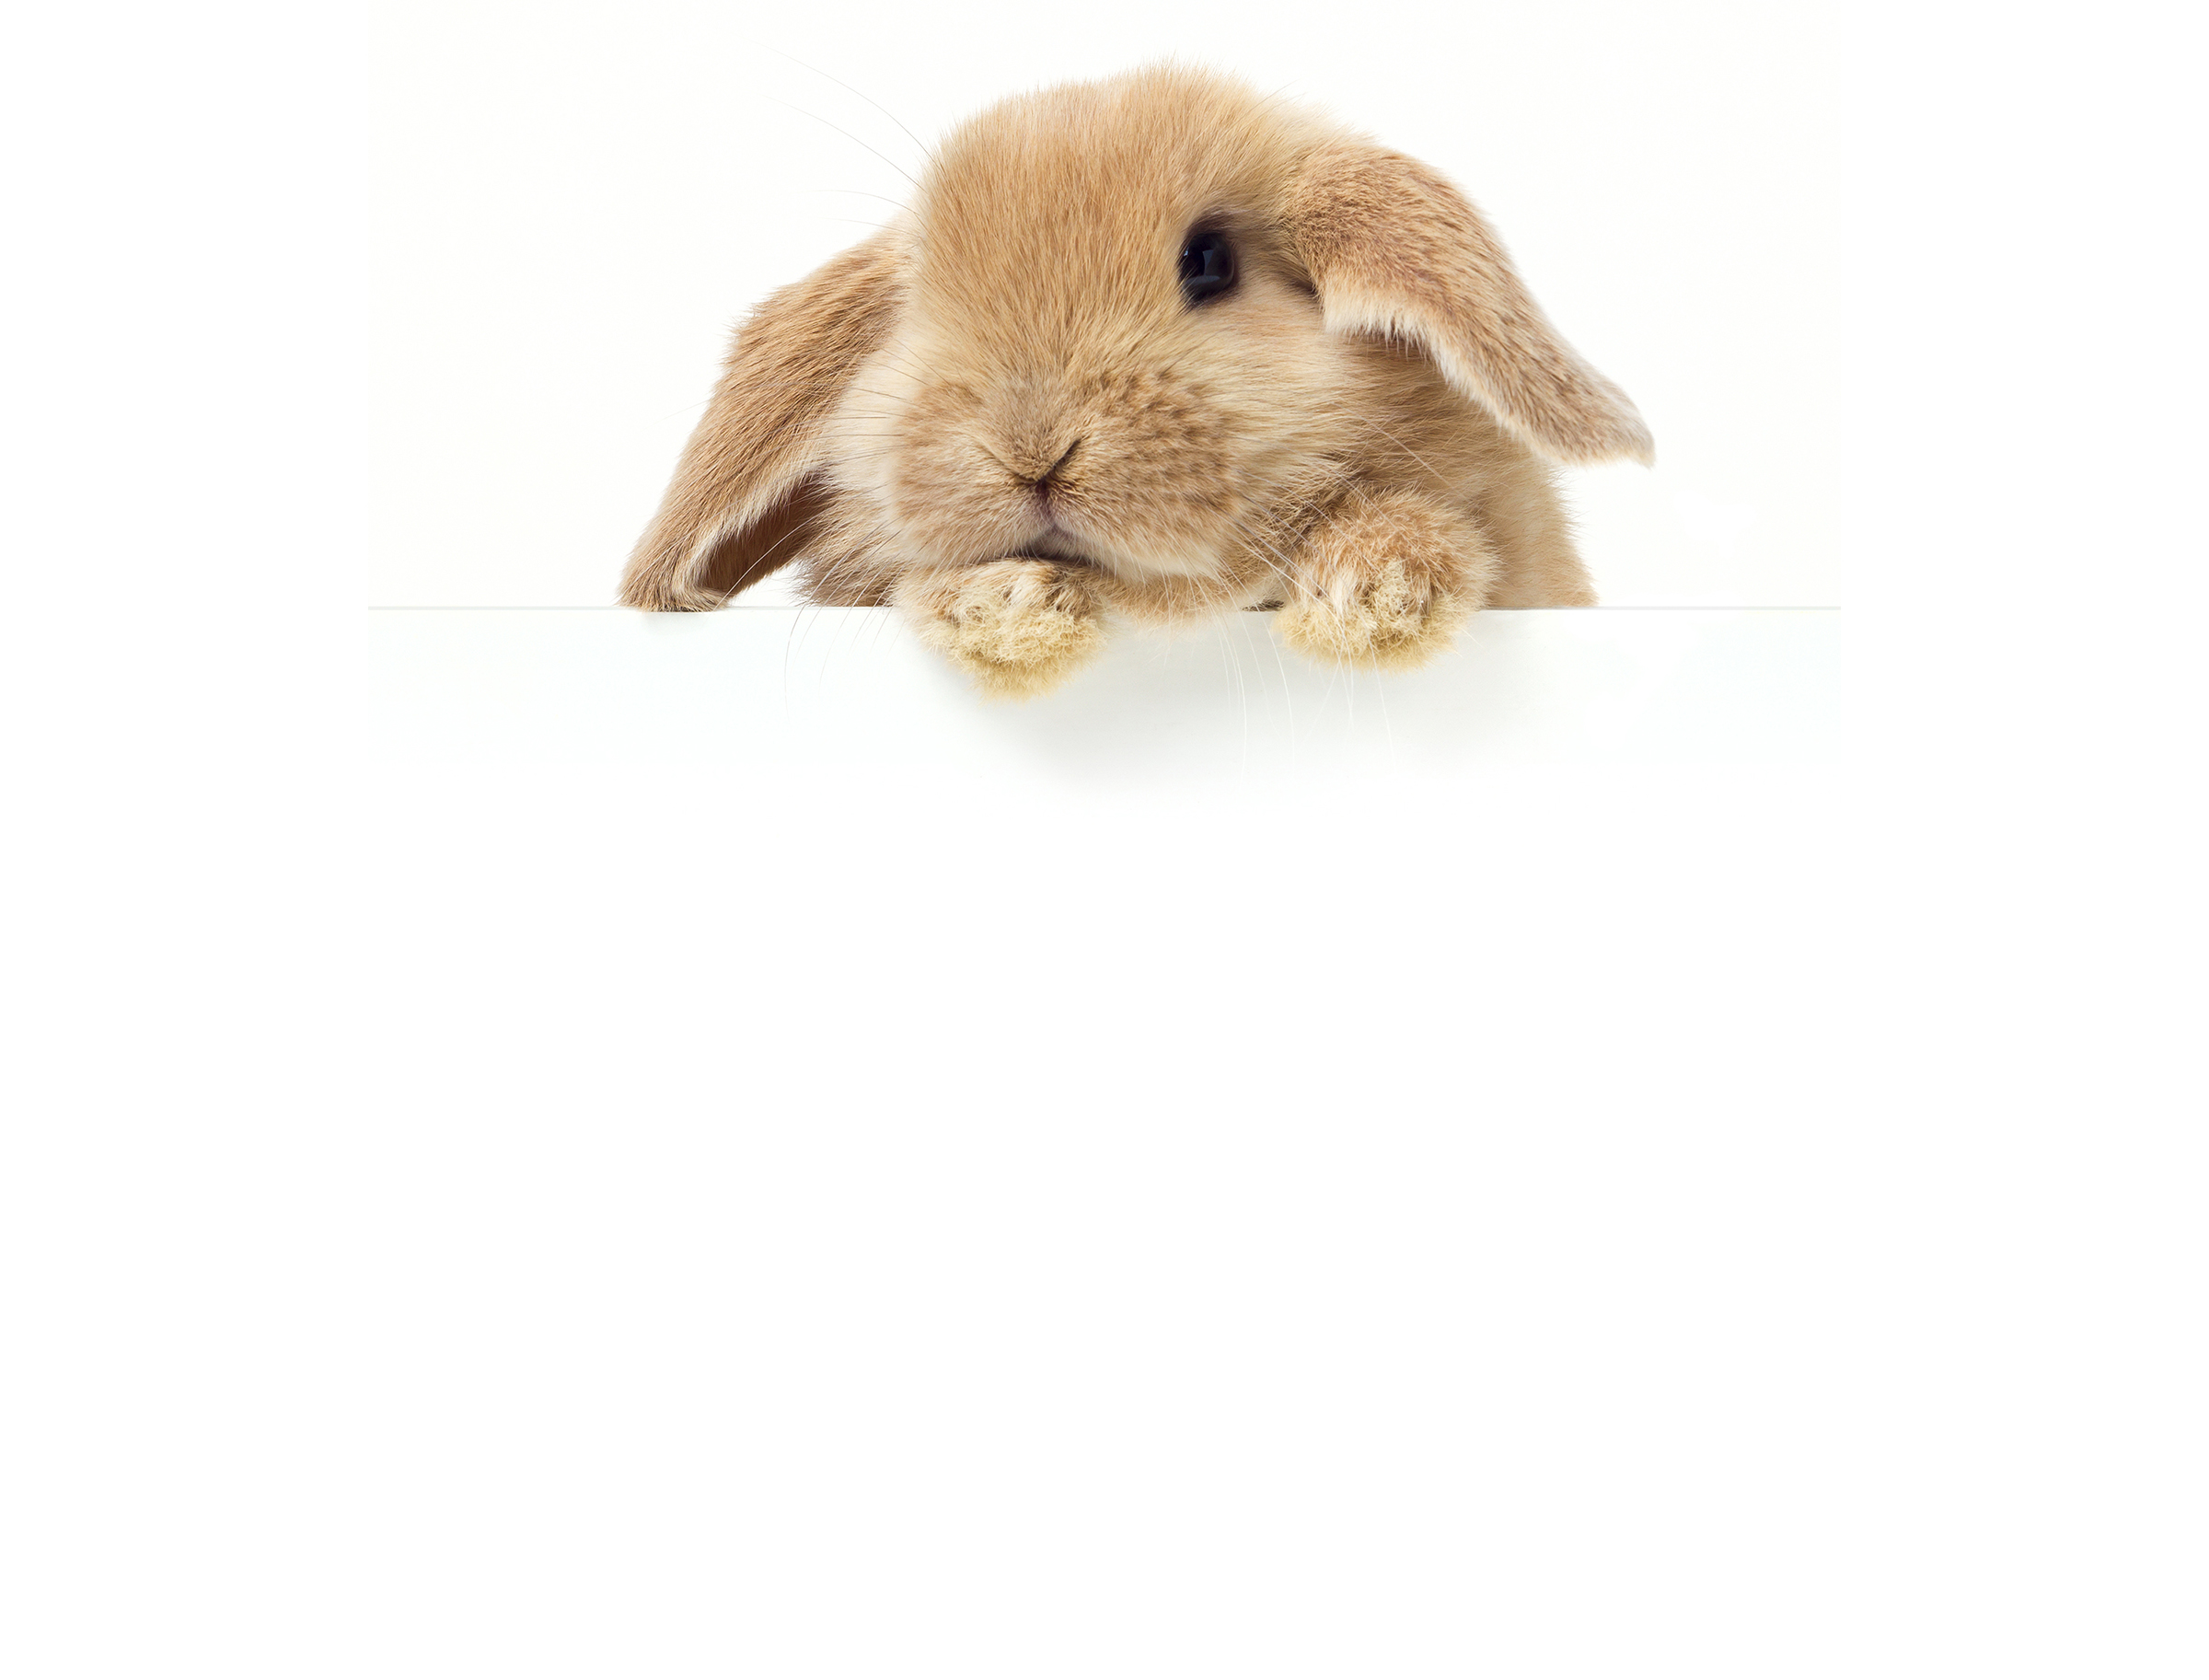 We Provide THE Bunnies And Fun